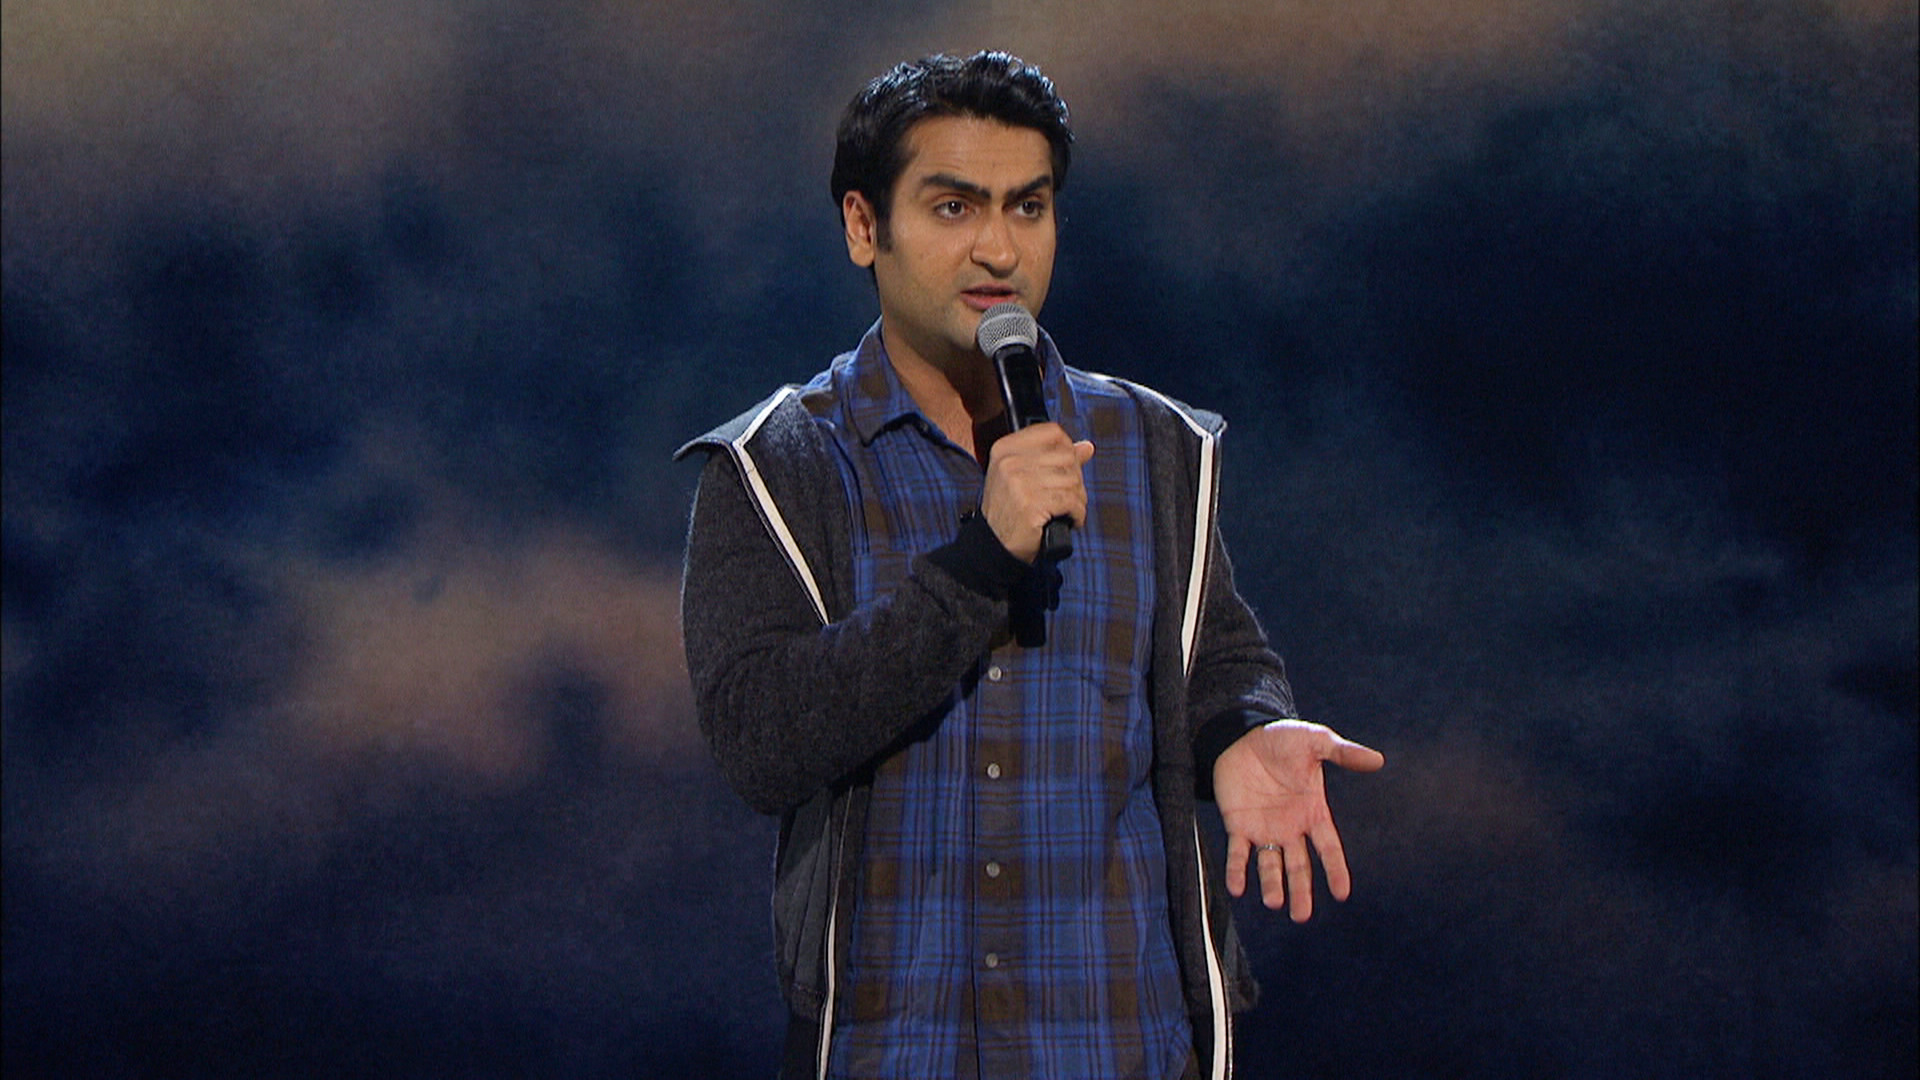 Uncensored - Kumail Nanjiani - House of Betas Pt. 4